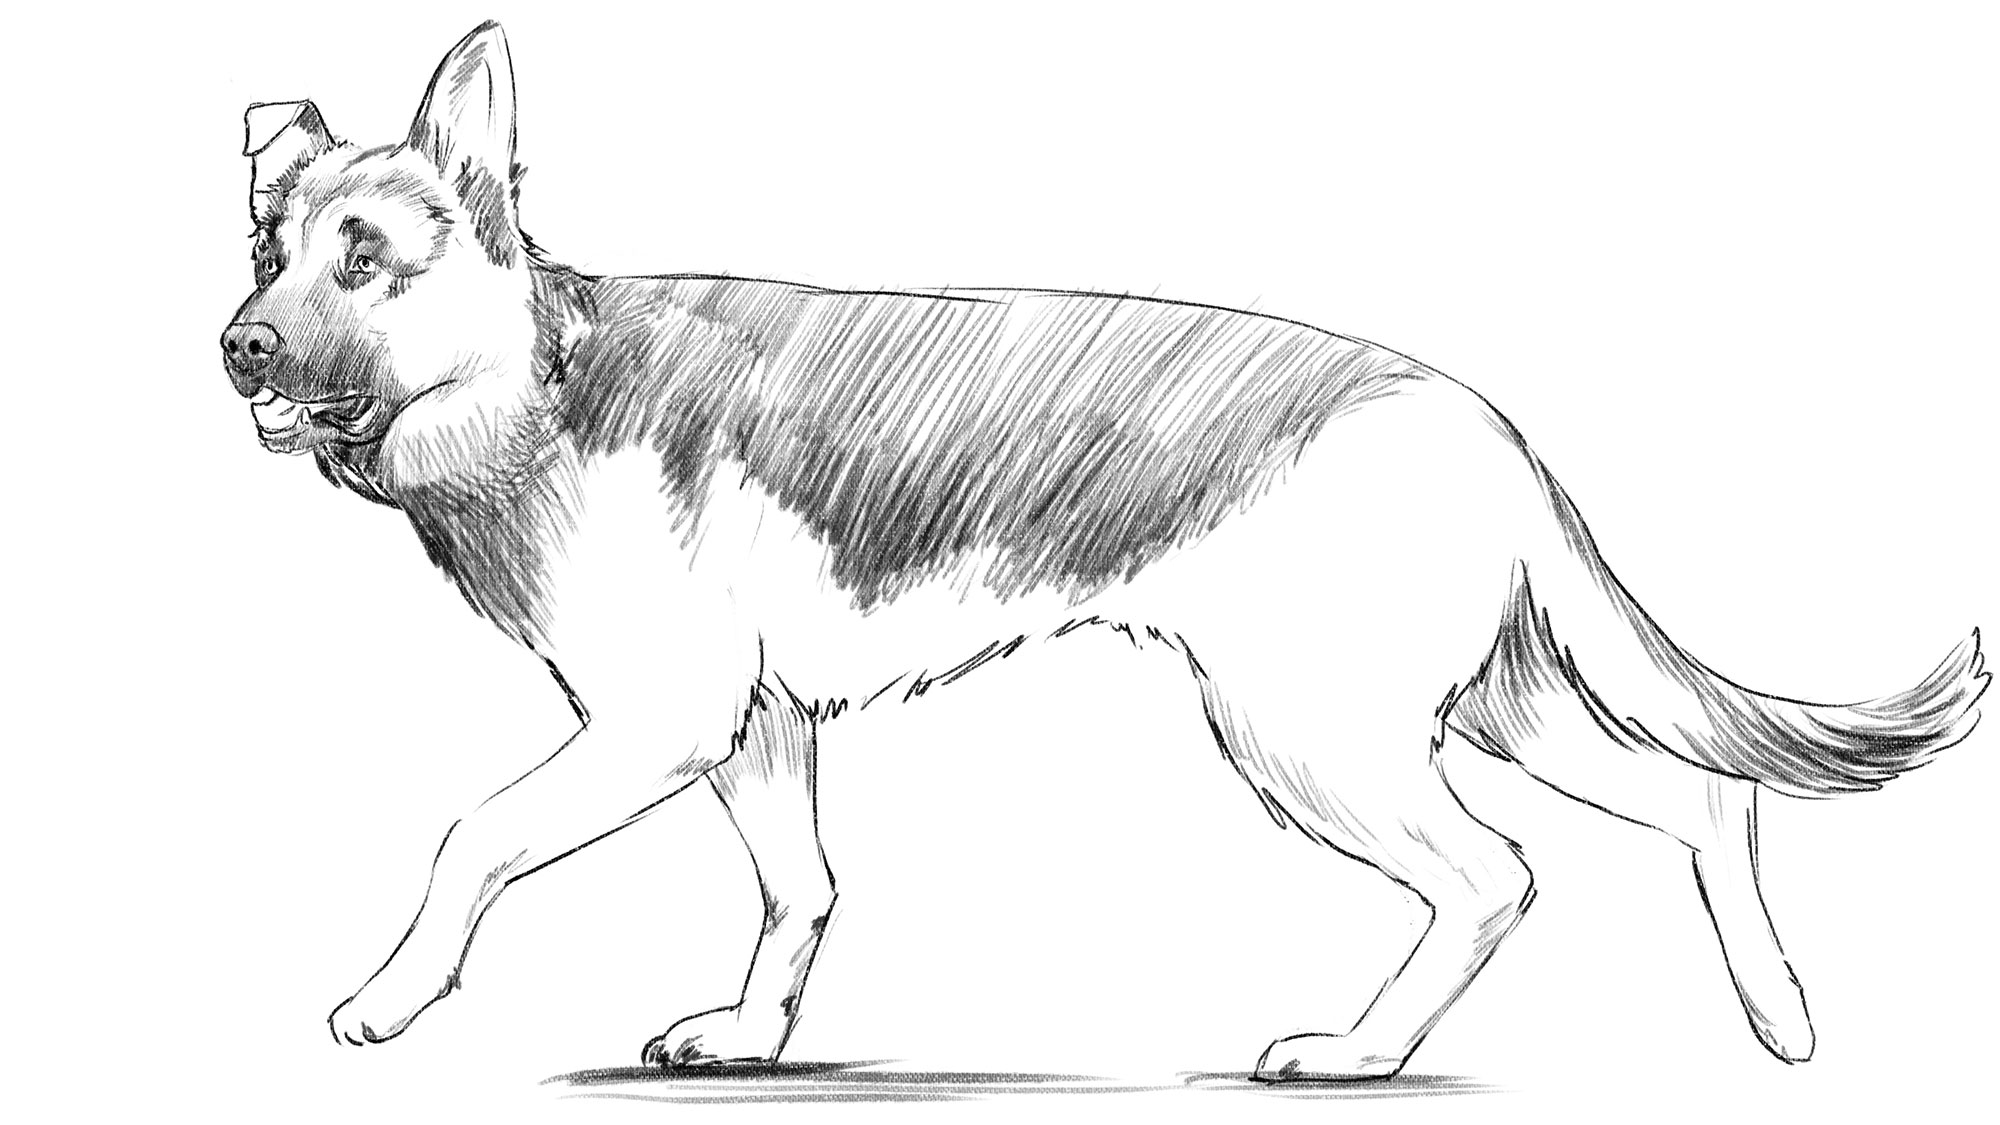 How to draw a dog: final touches